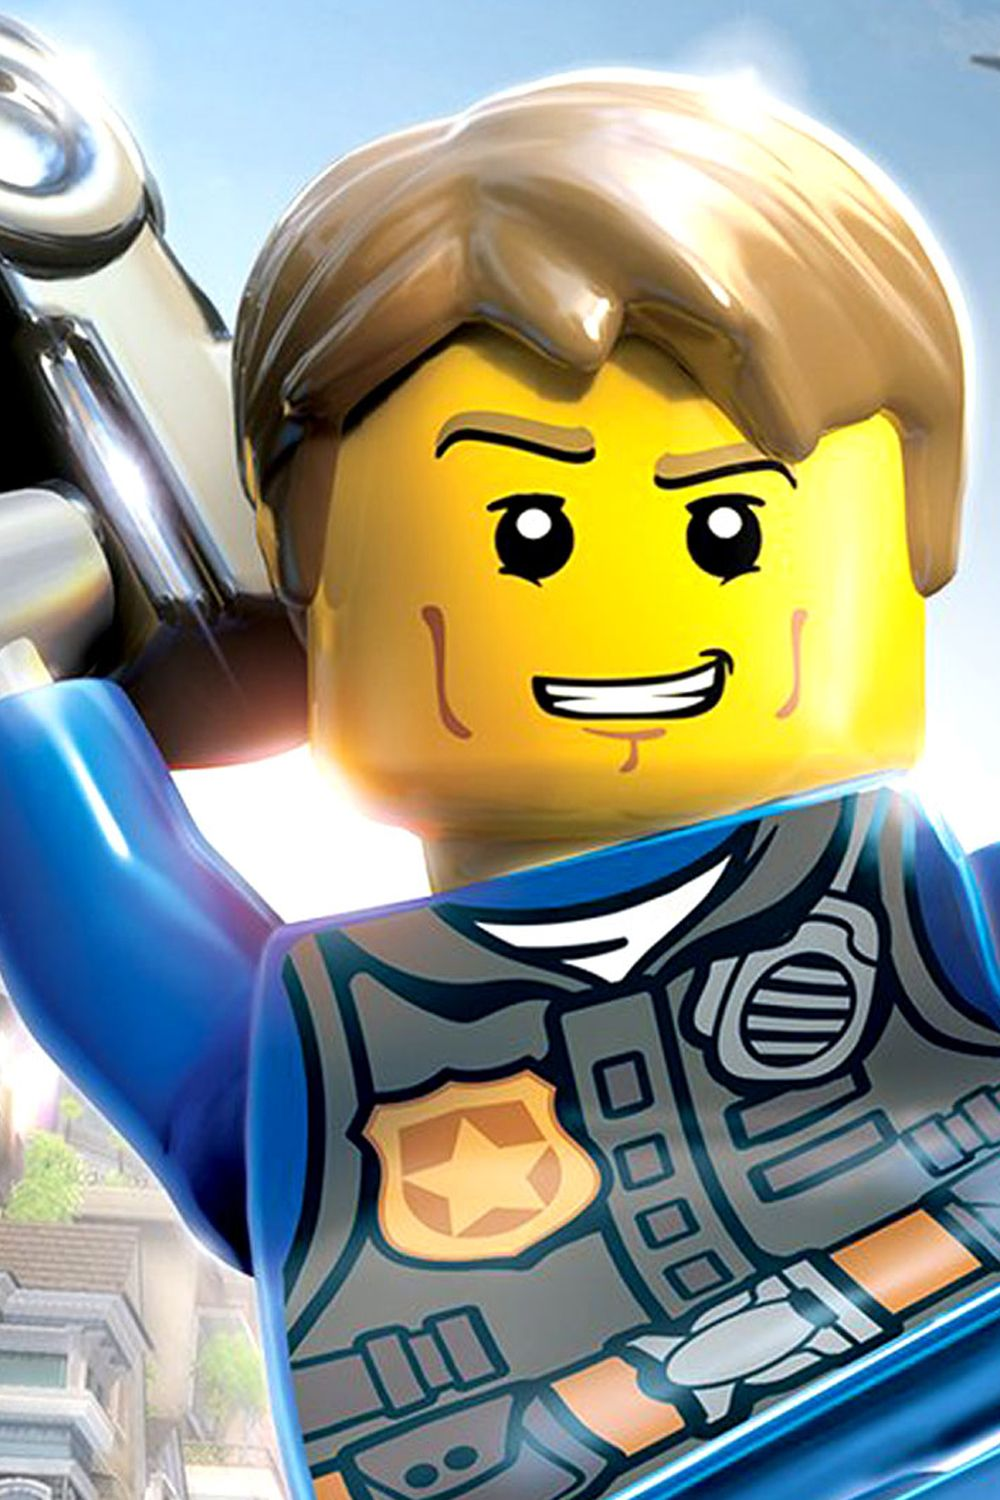 Top 5 Lego Video Games On The Xbox One Lego Pinterest Xbox One